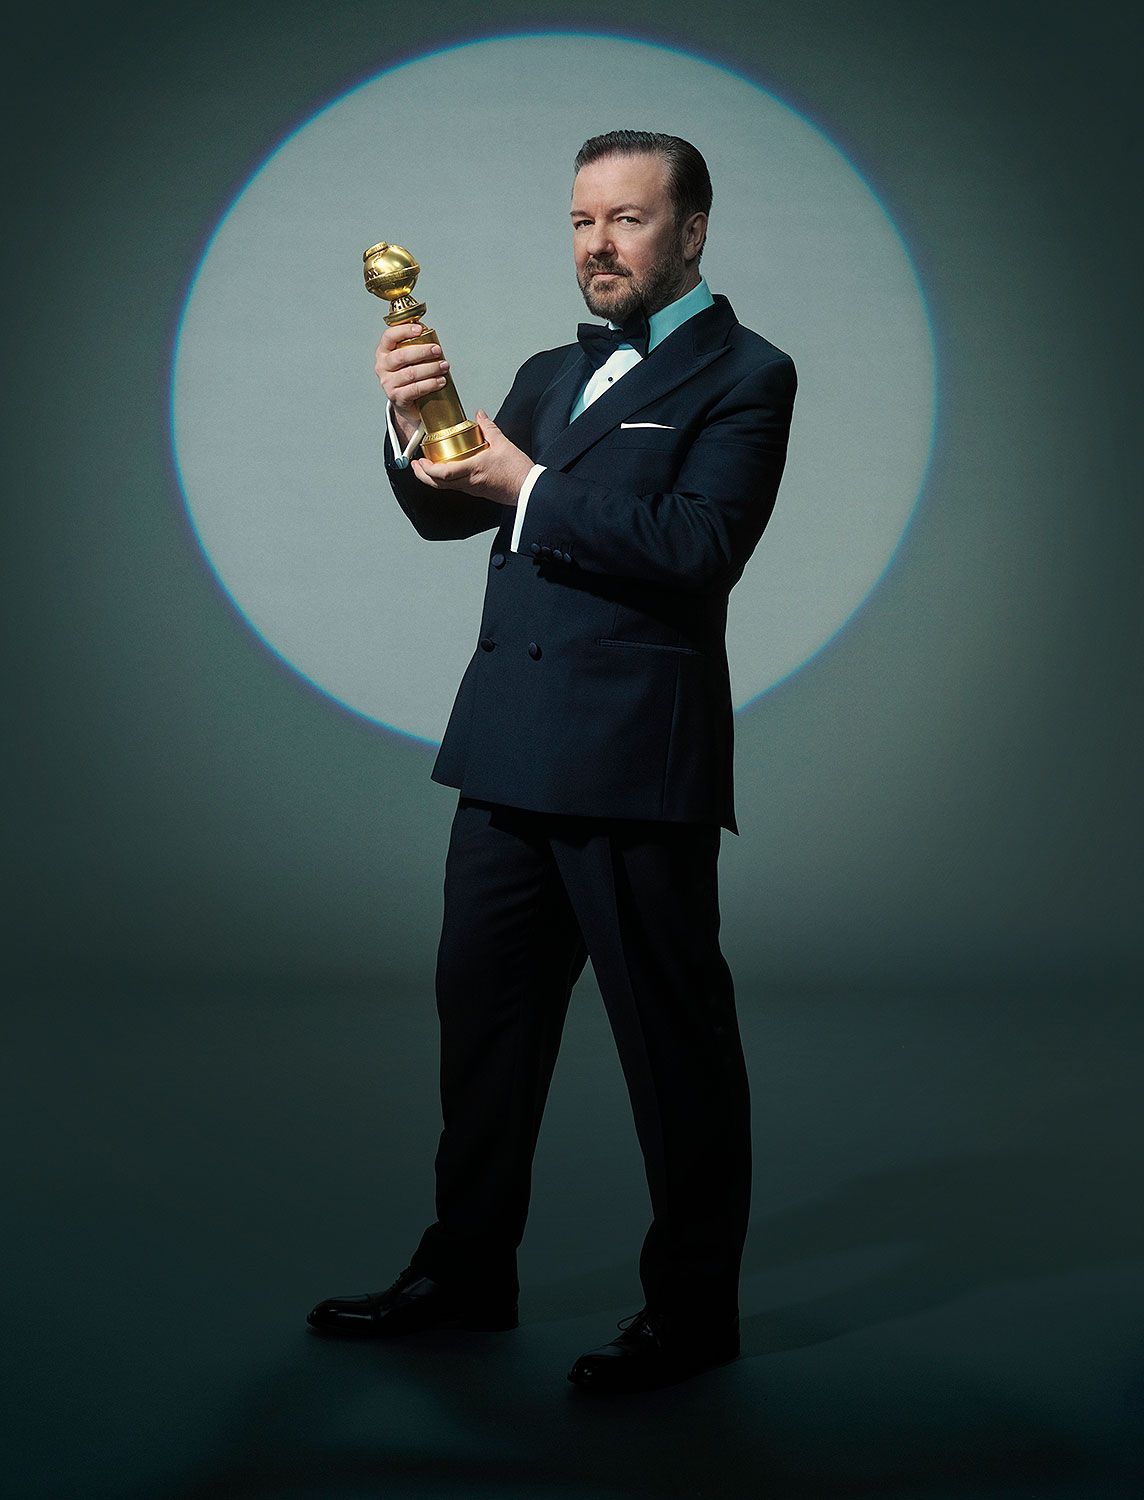 Ricky Gervais, host of GOLDEN GLOBE AWARDS